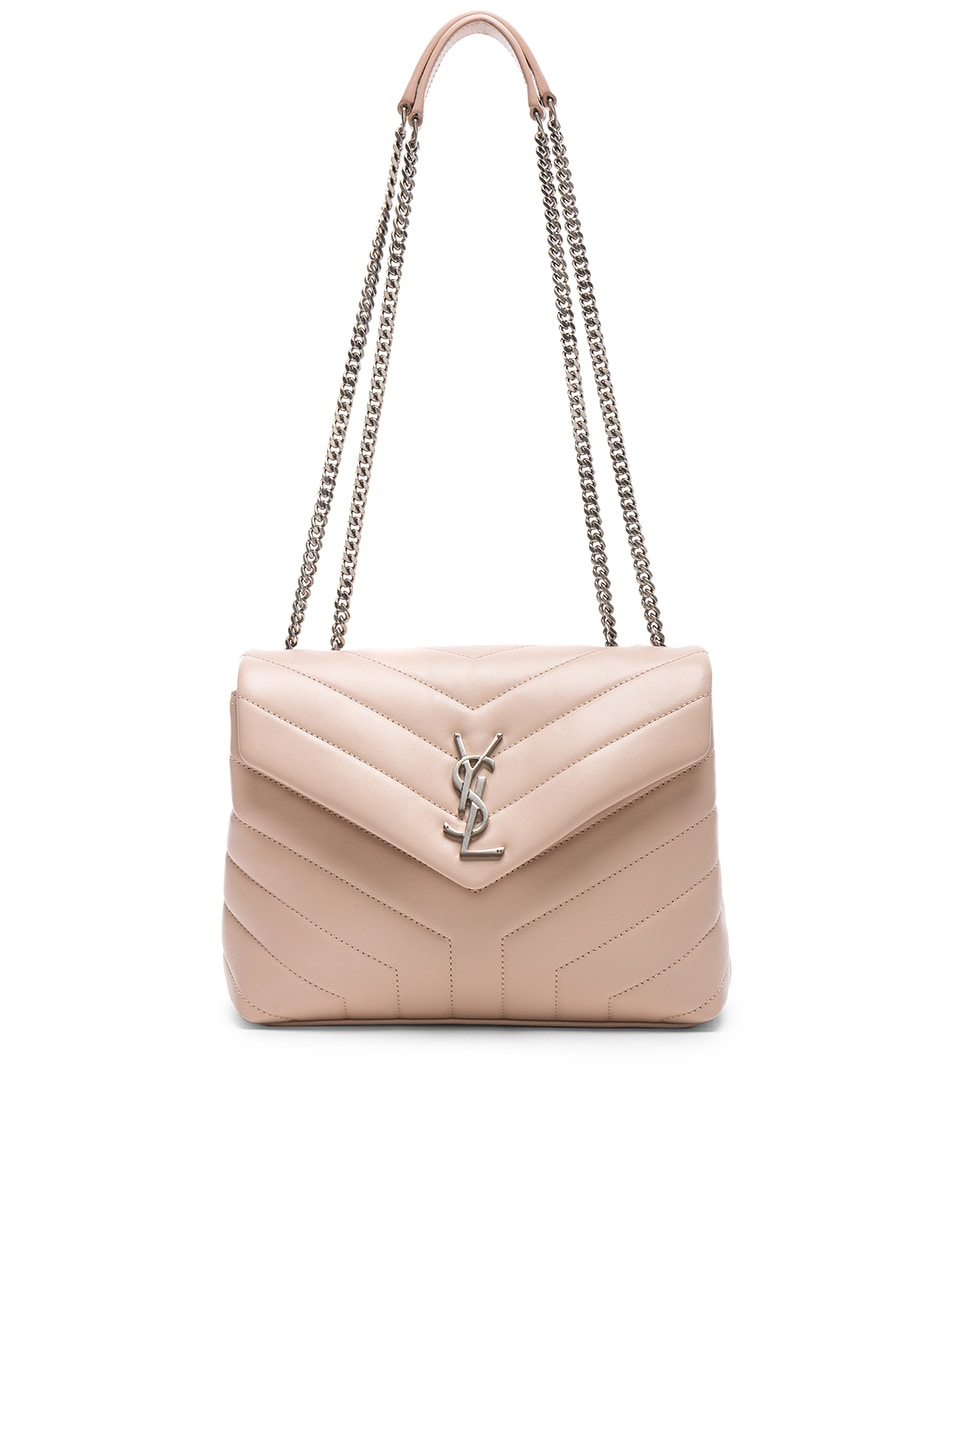 771af606f4 Image 1 of Saint Laurent Small Supple Monogramme Loulou Chain Bag in Marble  Pink